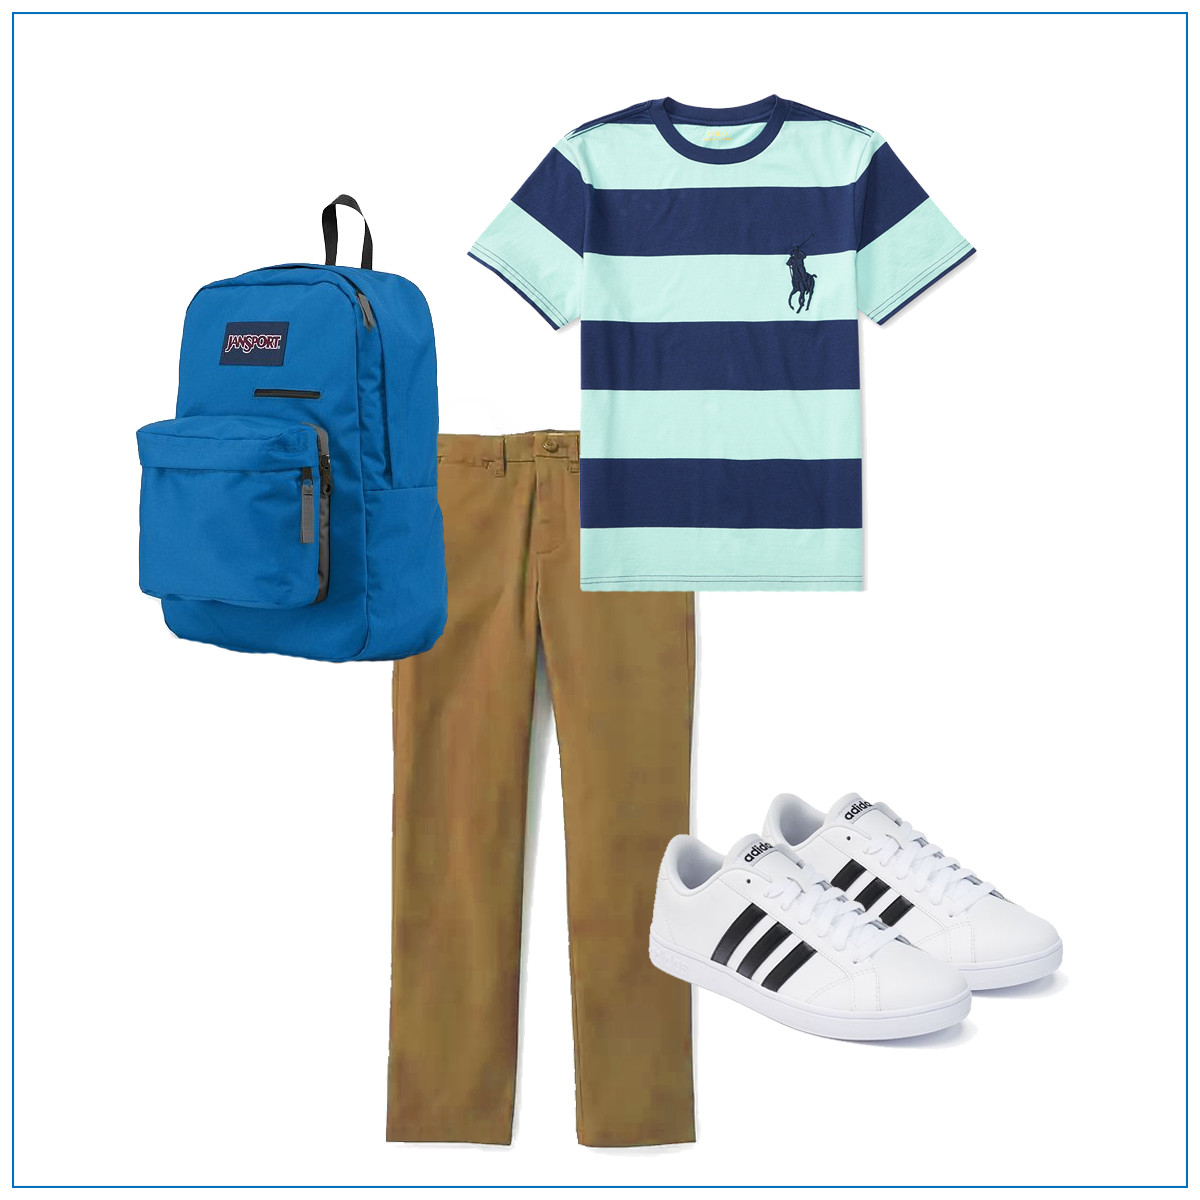 Khakis with a striped shirt and Adidas sneakers